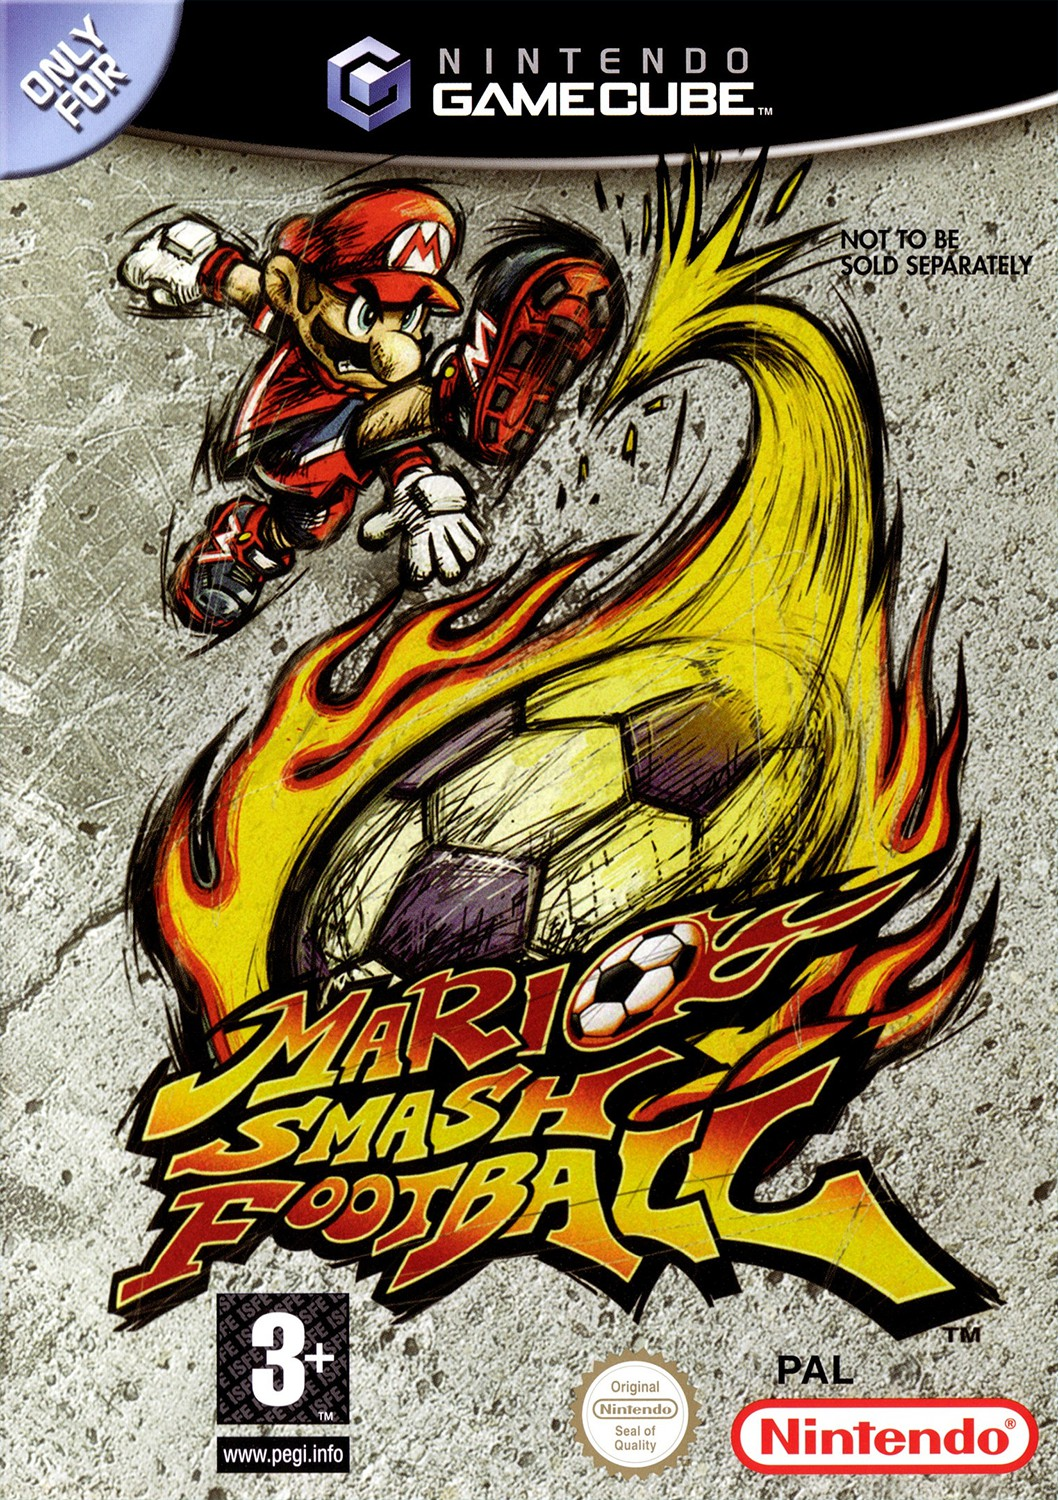 GameCube - Mario Smash Football / Mario Strikers